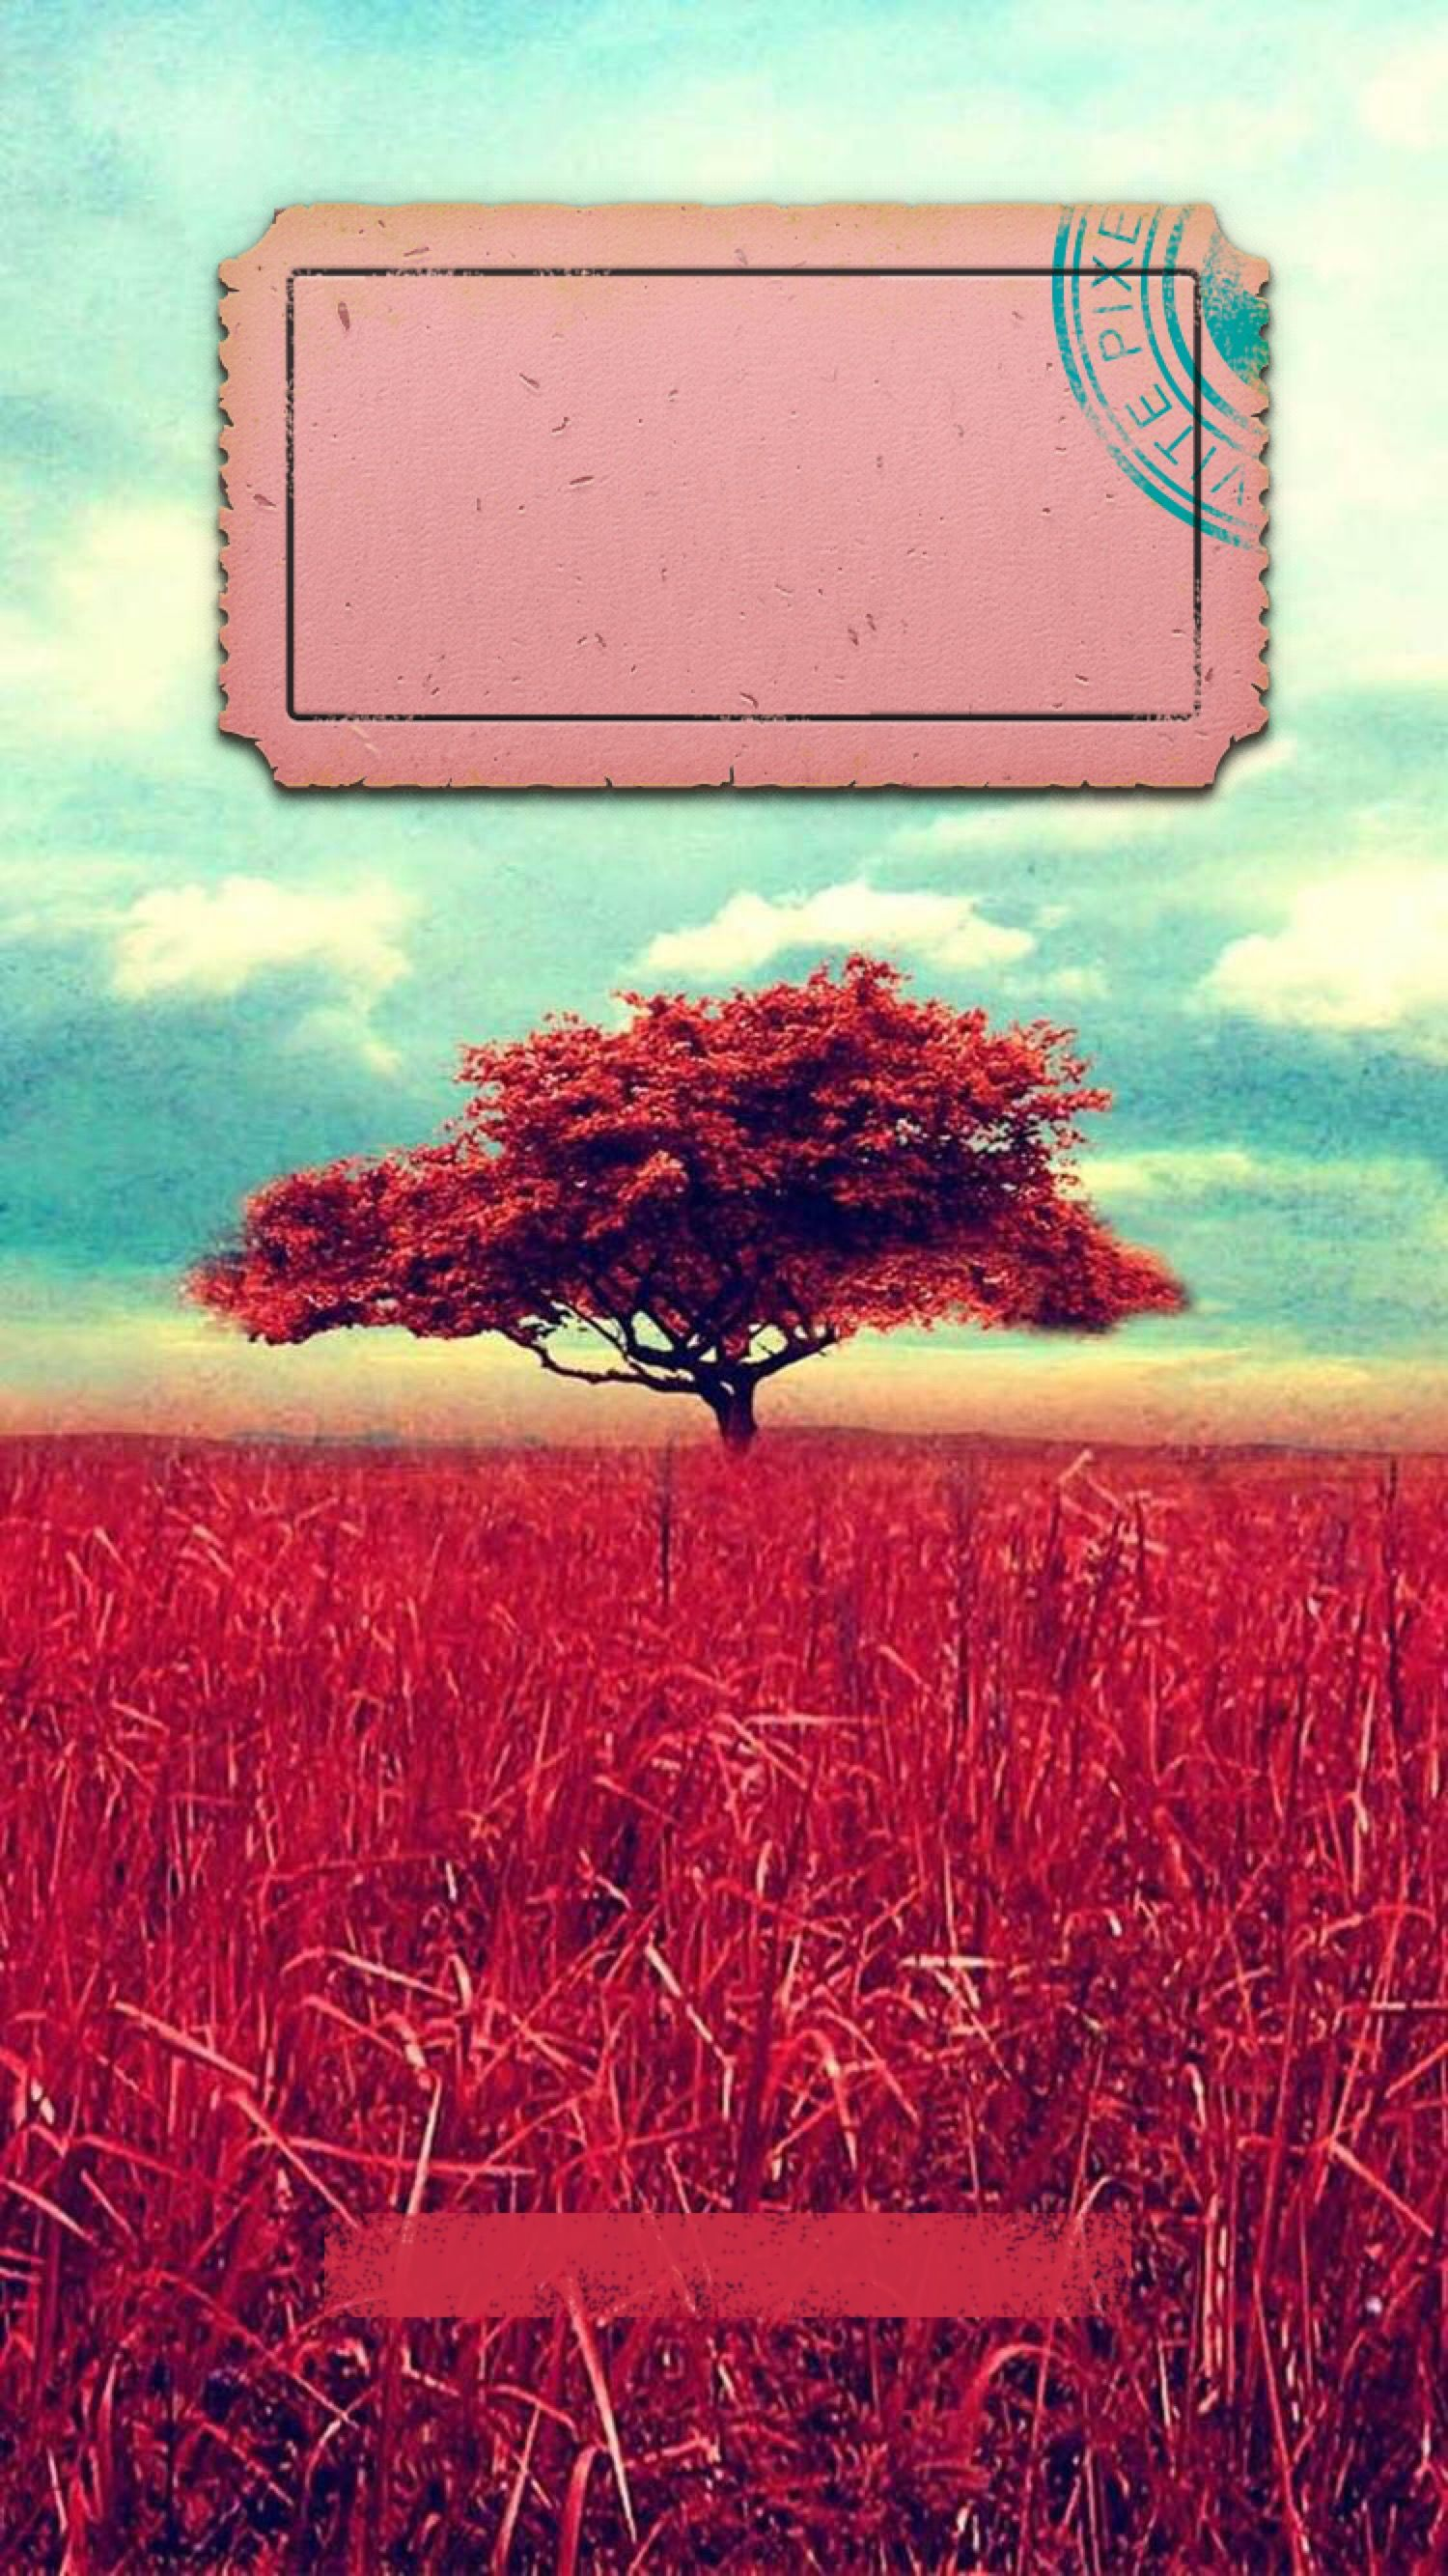 Tap And Get The Free App Lockscreens Art Creative Sky Clouds Tree Nature Red Blue Hd Iphone Landscape Wallpaper Iphone 5s Wallpaper Vintage Style Wallpaper